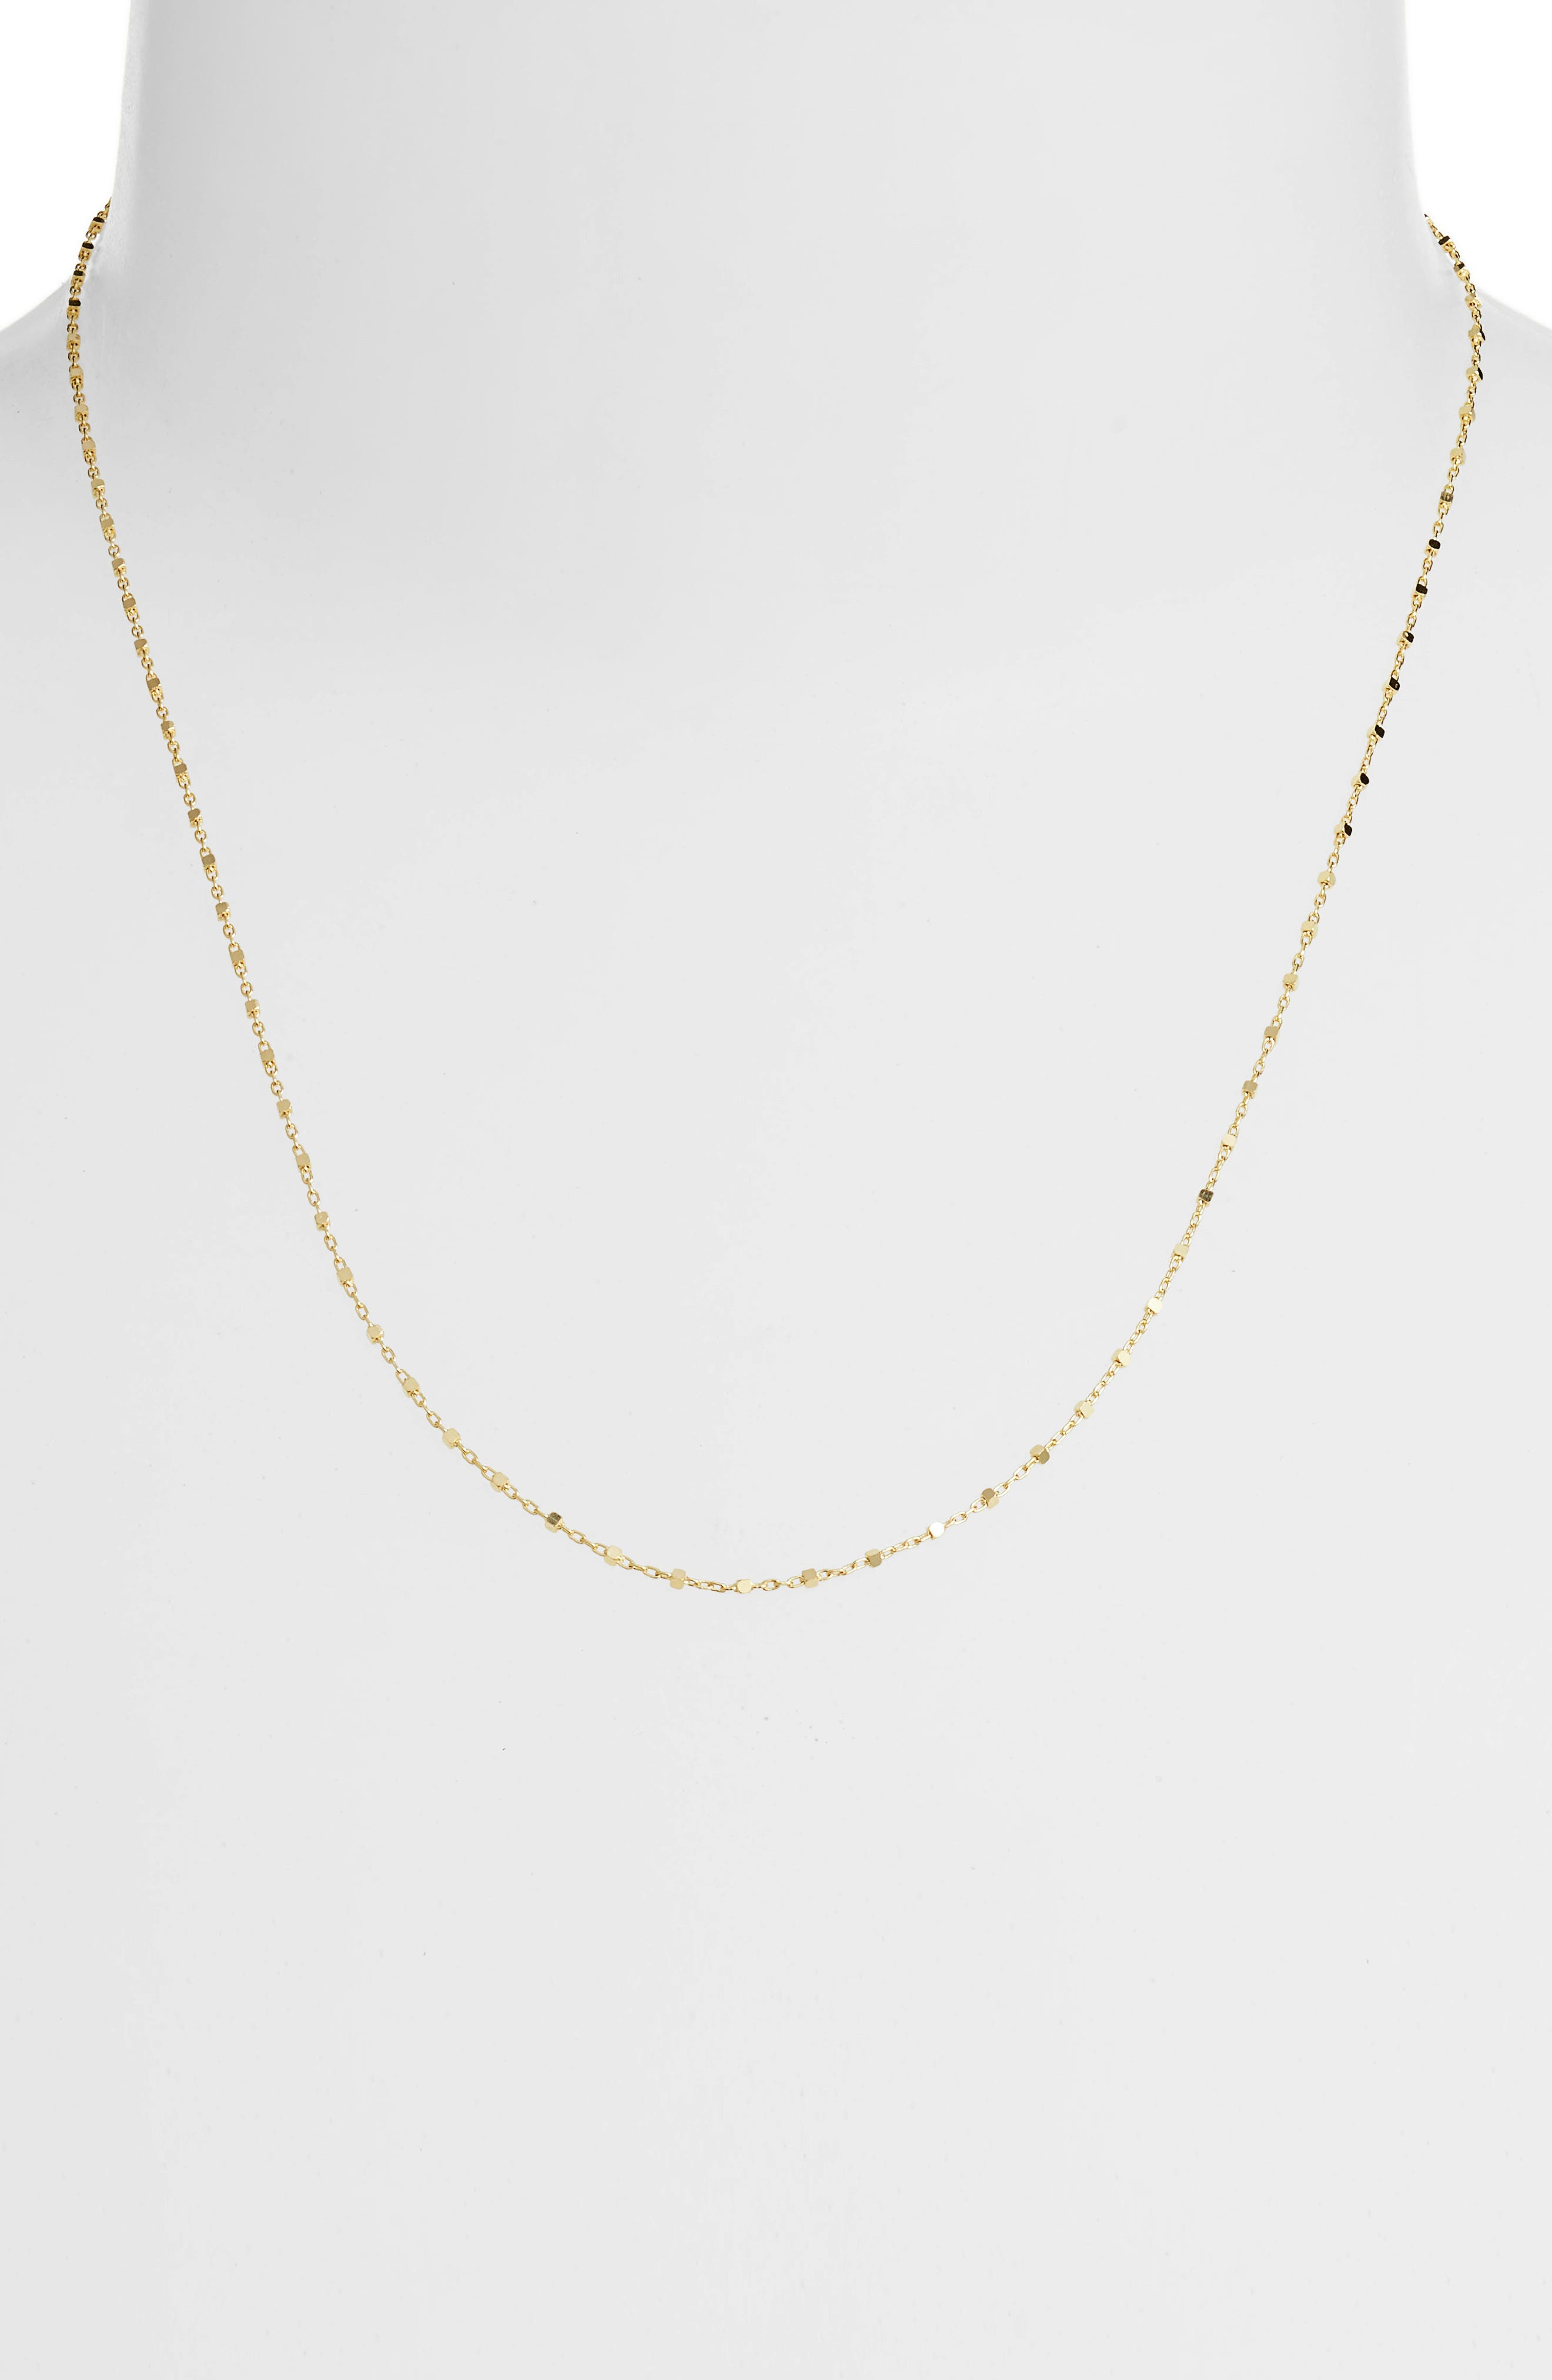 Beaded Chain Necklace,                             Alternate thumbnail 2, color,                             YELLOW GOLD